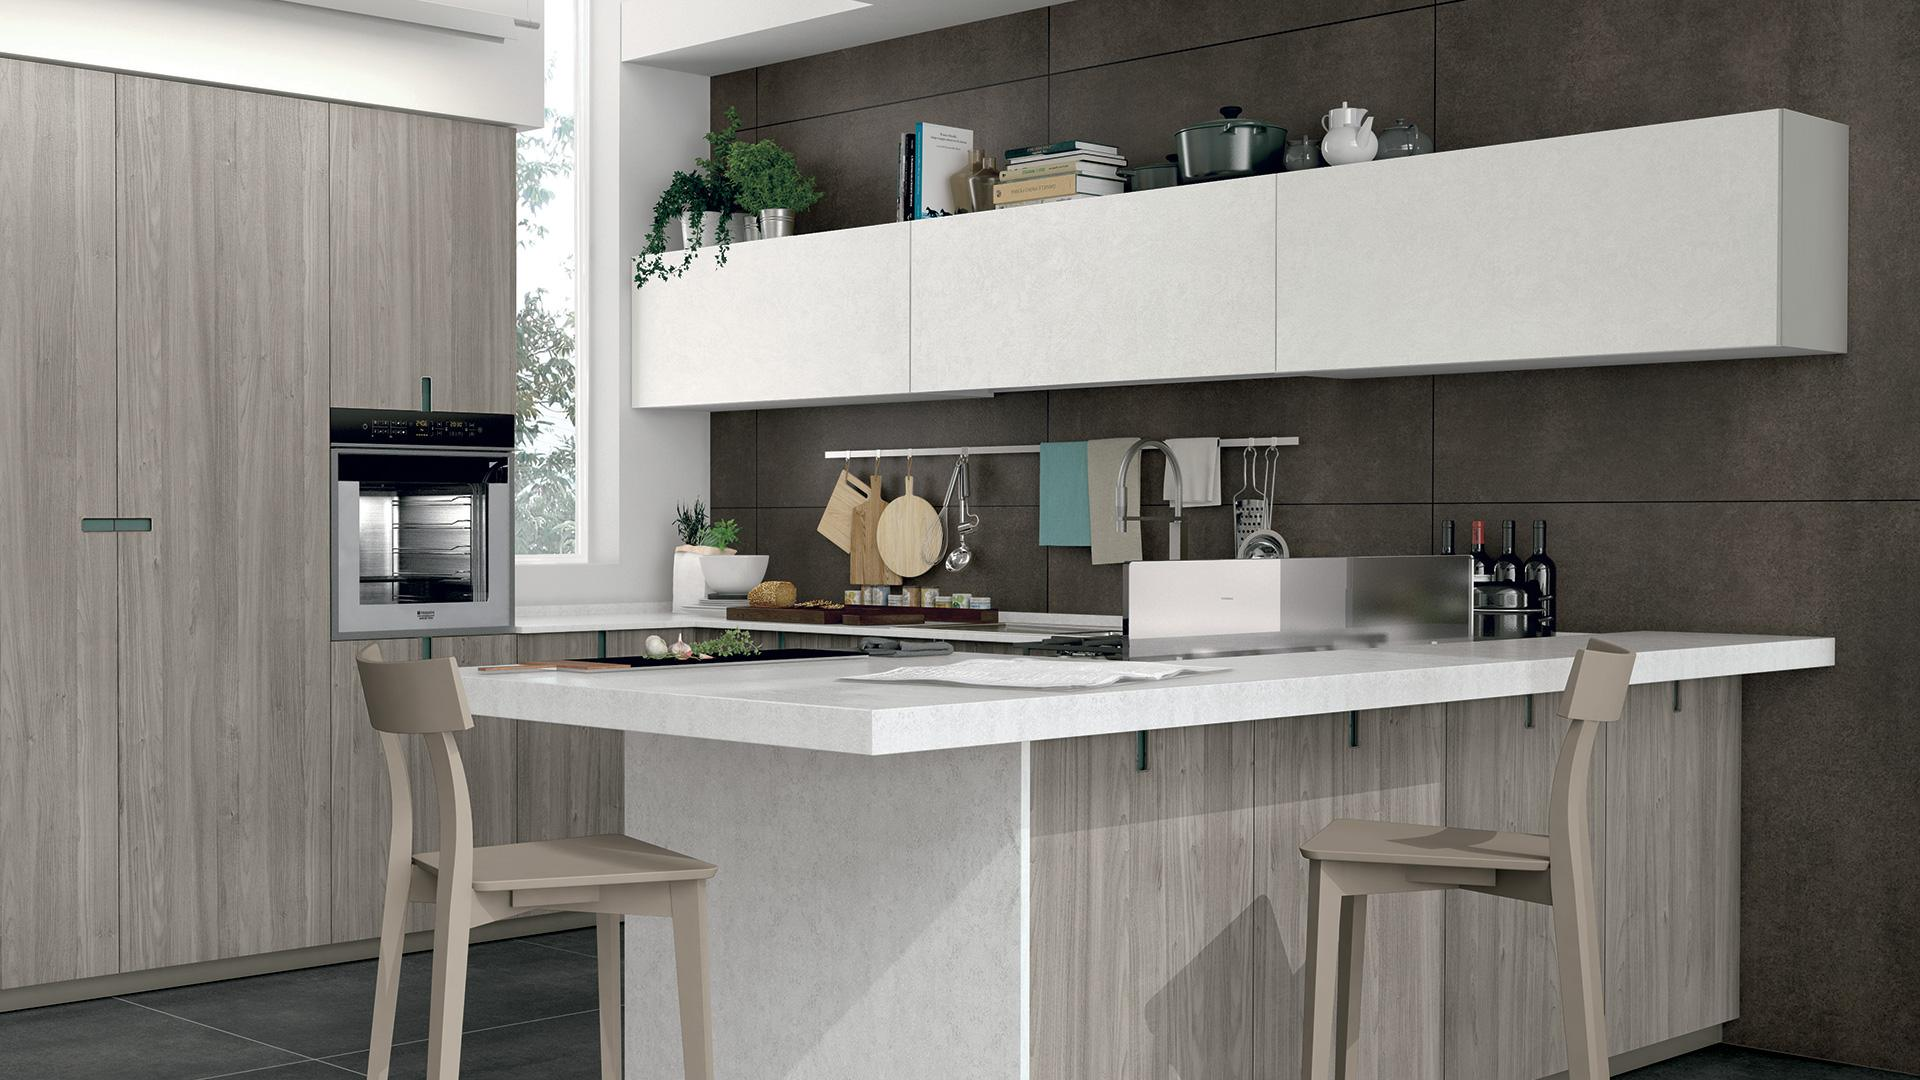 Piccole Cucine Moderne. Top With Piccole Cucine Moderne. Stunning ...